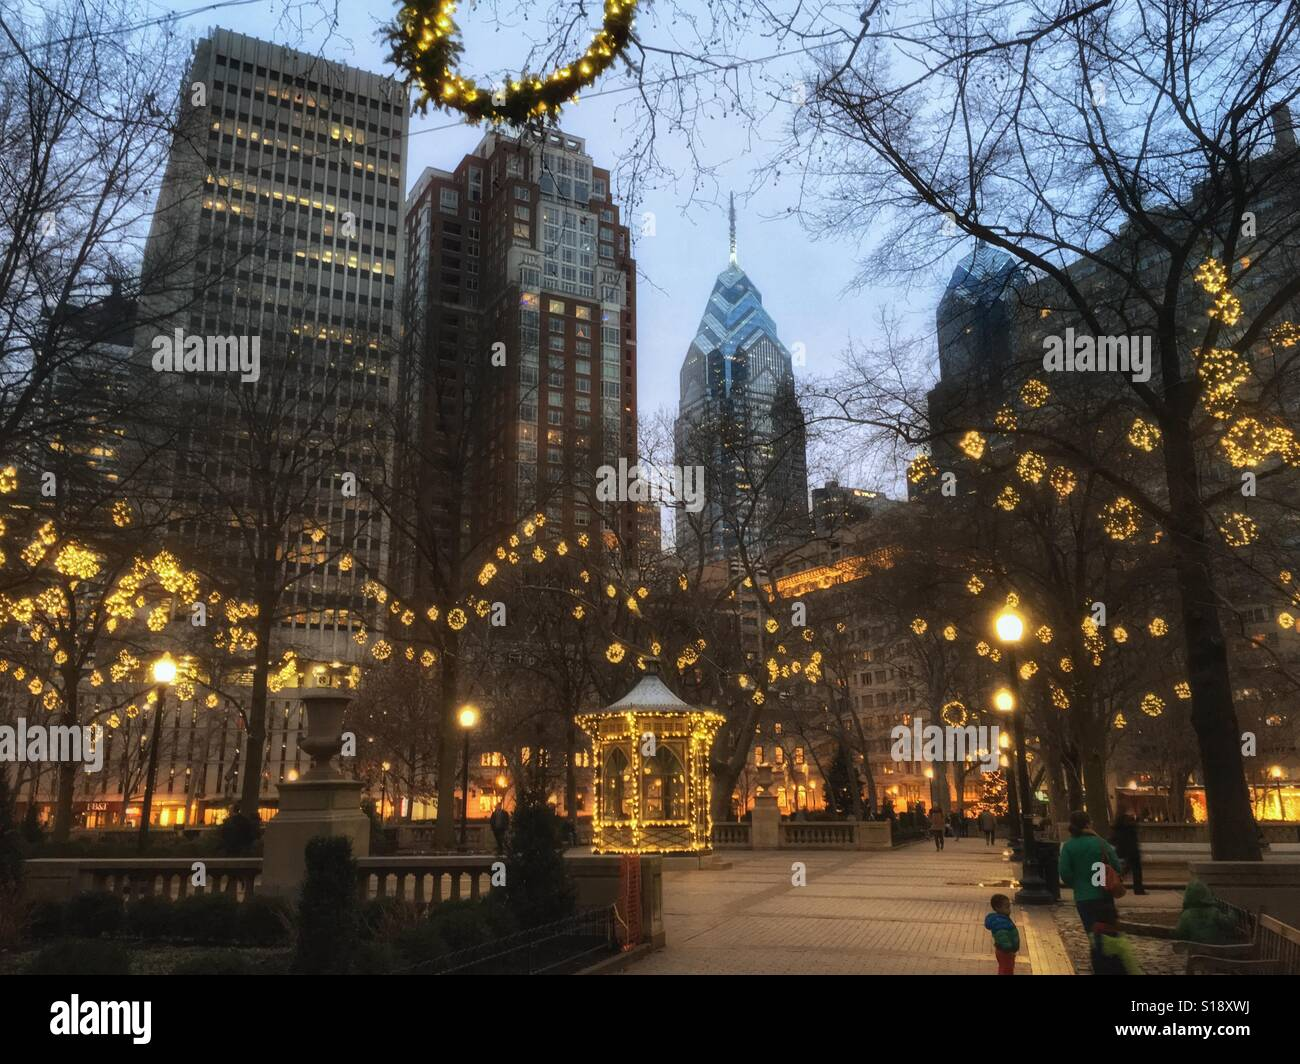 Rittenhouse Square in winter with holiday decorations, Philadelphia, Pennsylvania, USA Stock Photo